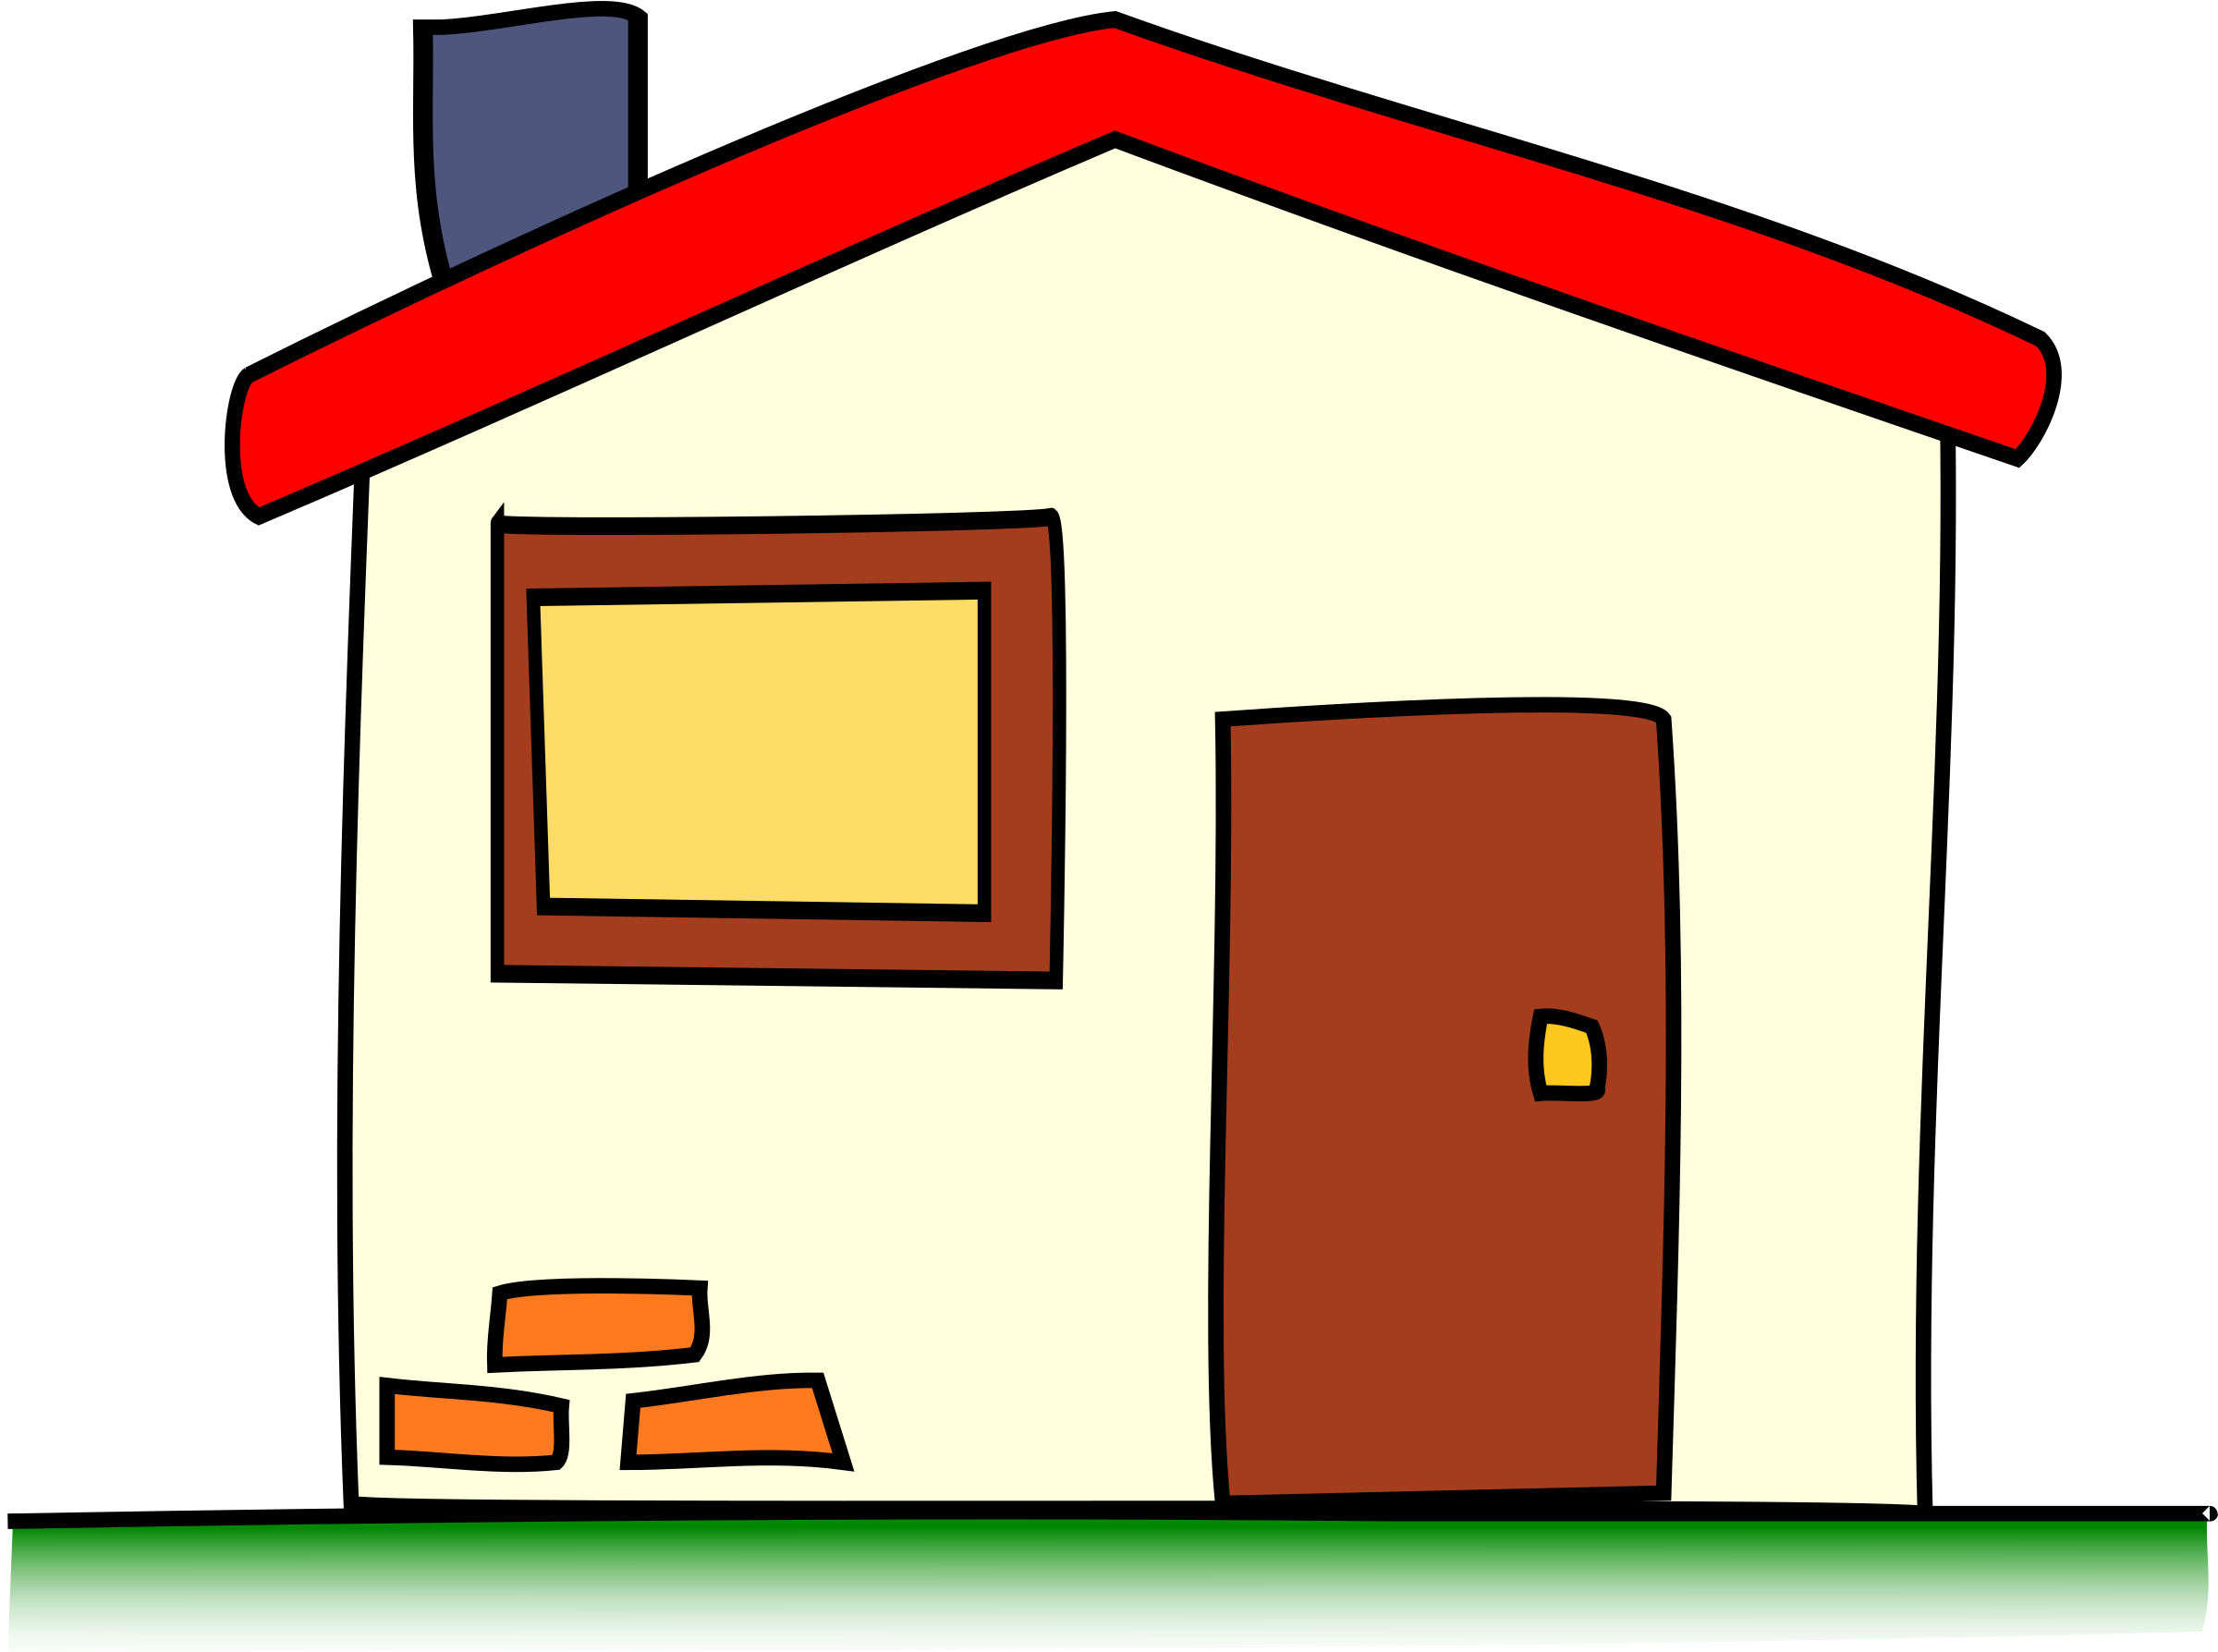 Cute house clipart 2 ClipartP - Home Clipart